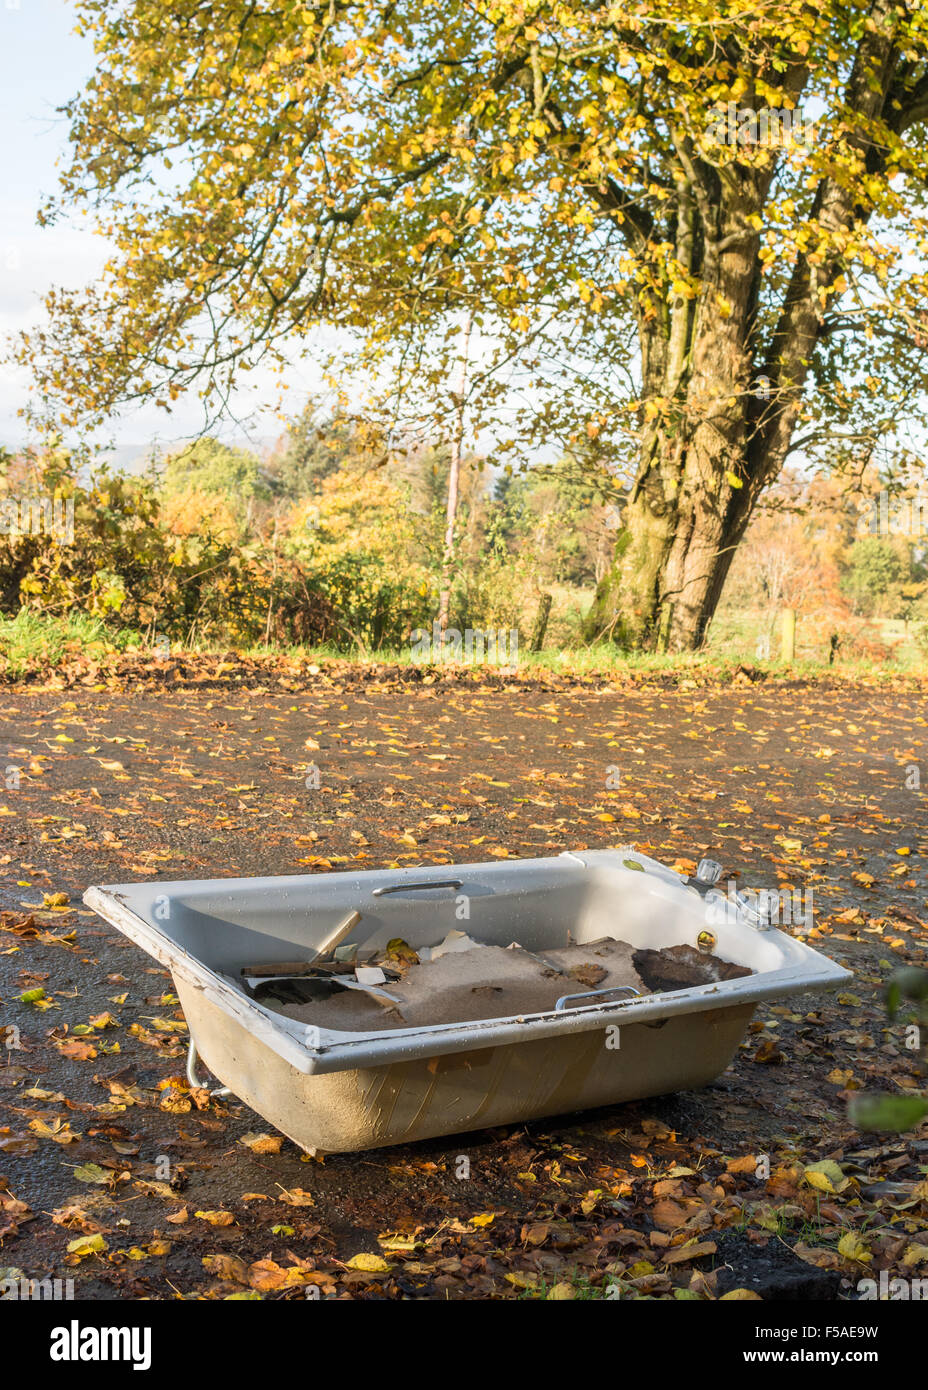 bath and builders rubble illegally dumped in beautiful rural lay by in Stirlingshire, Scotland, UK - Stock Image